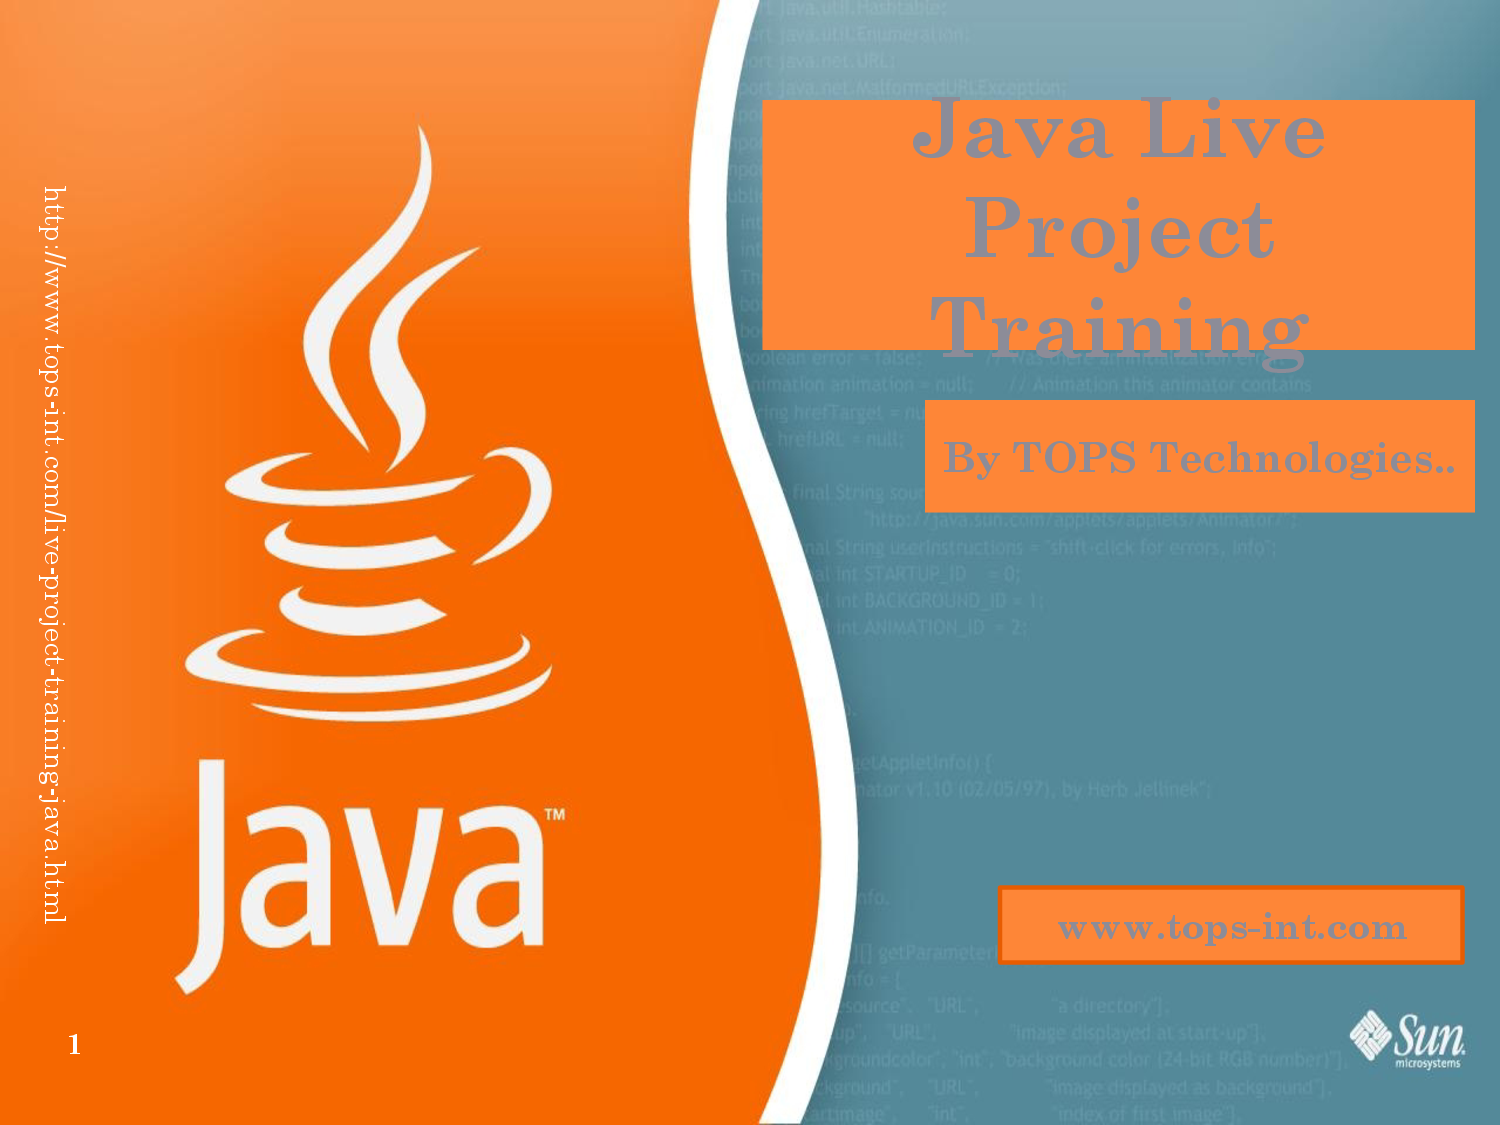 Get the real time experience of working on Java development projects